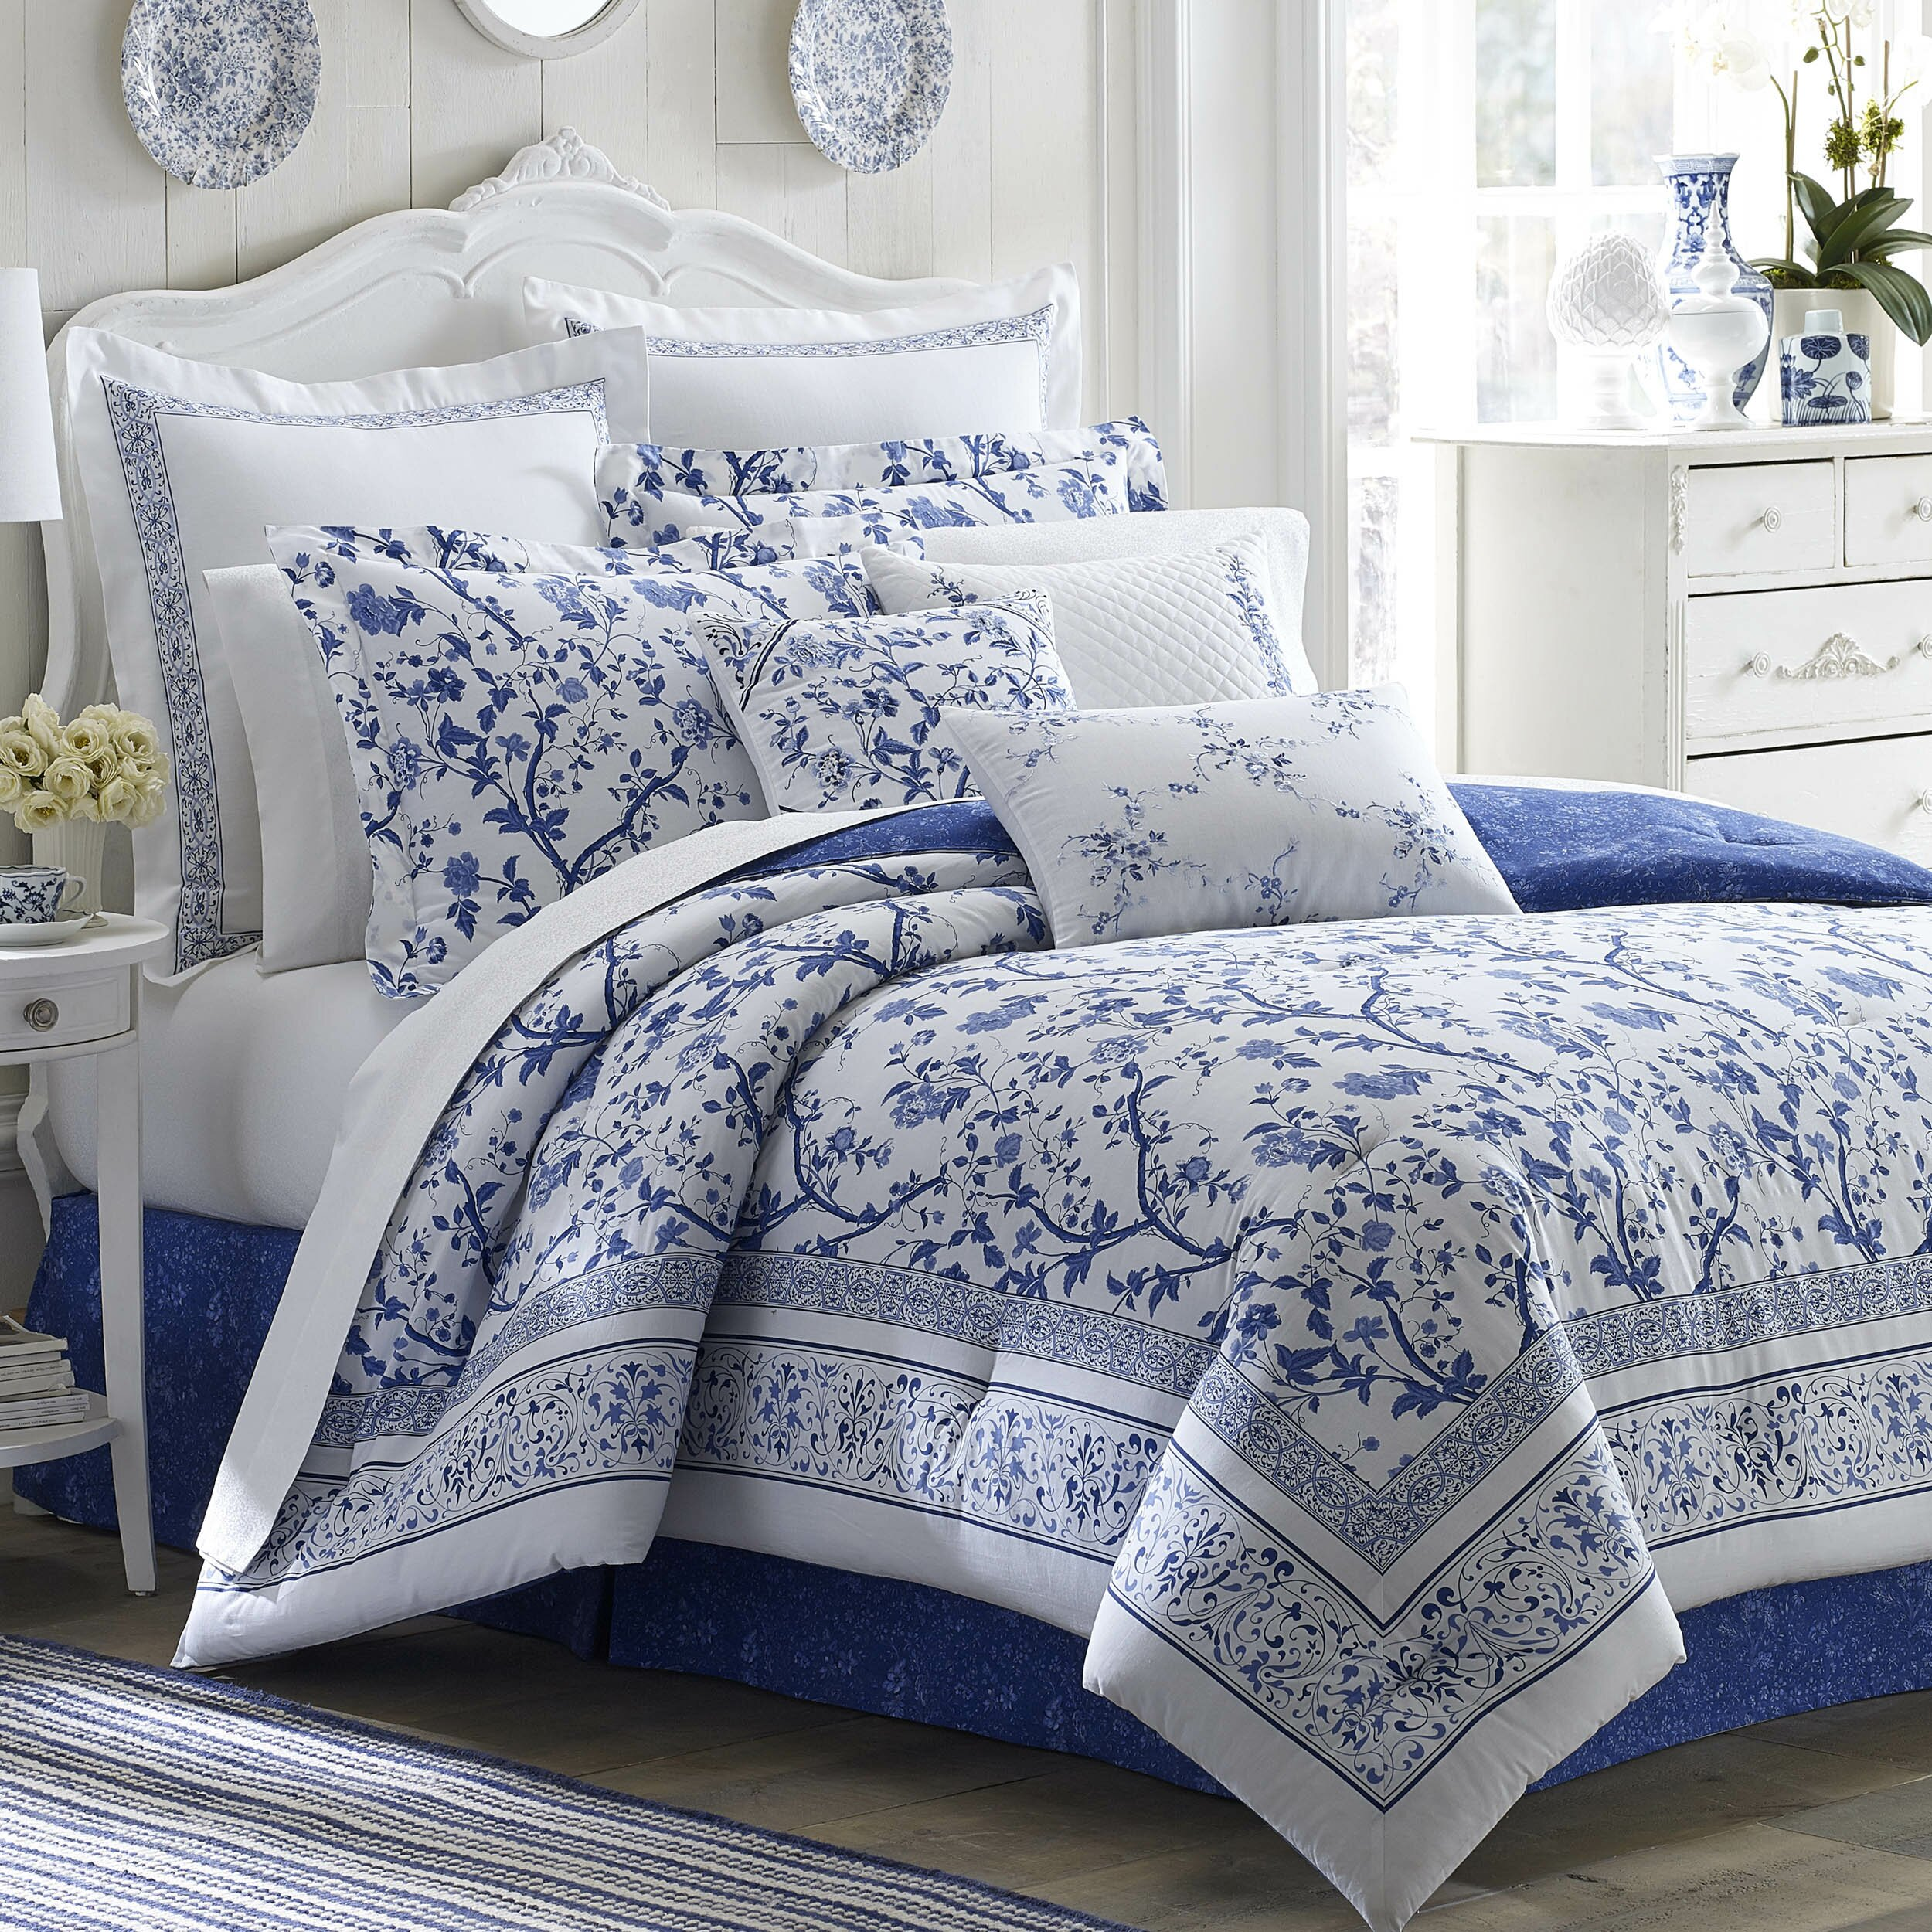 Laura Ashley Bedding Charlotte Comforter Collection